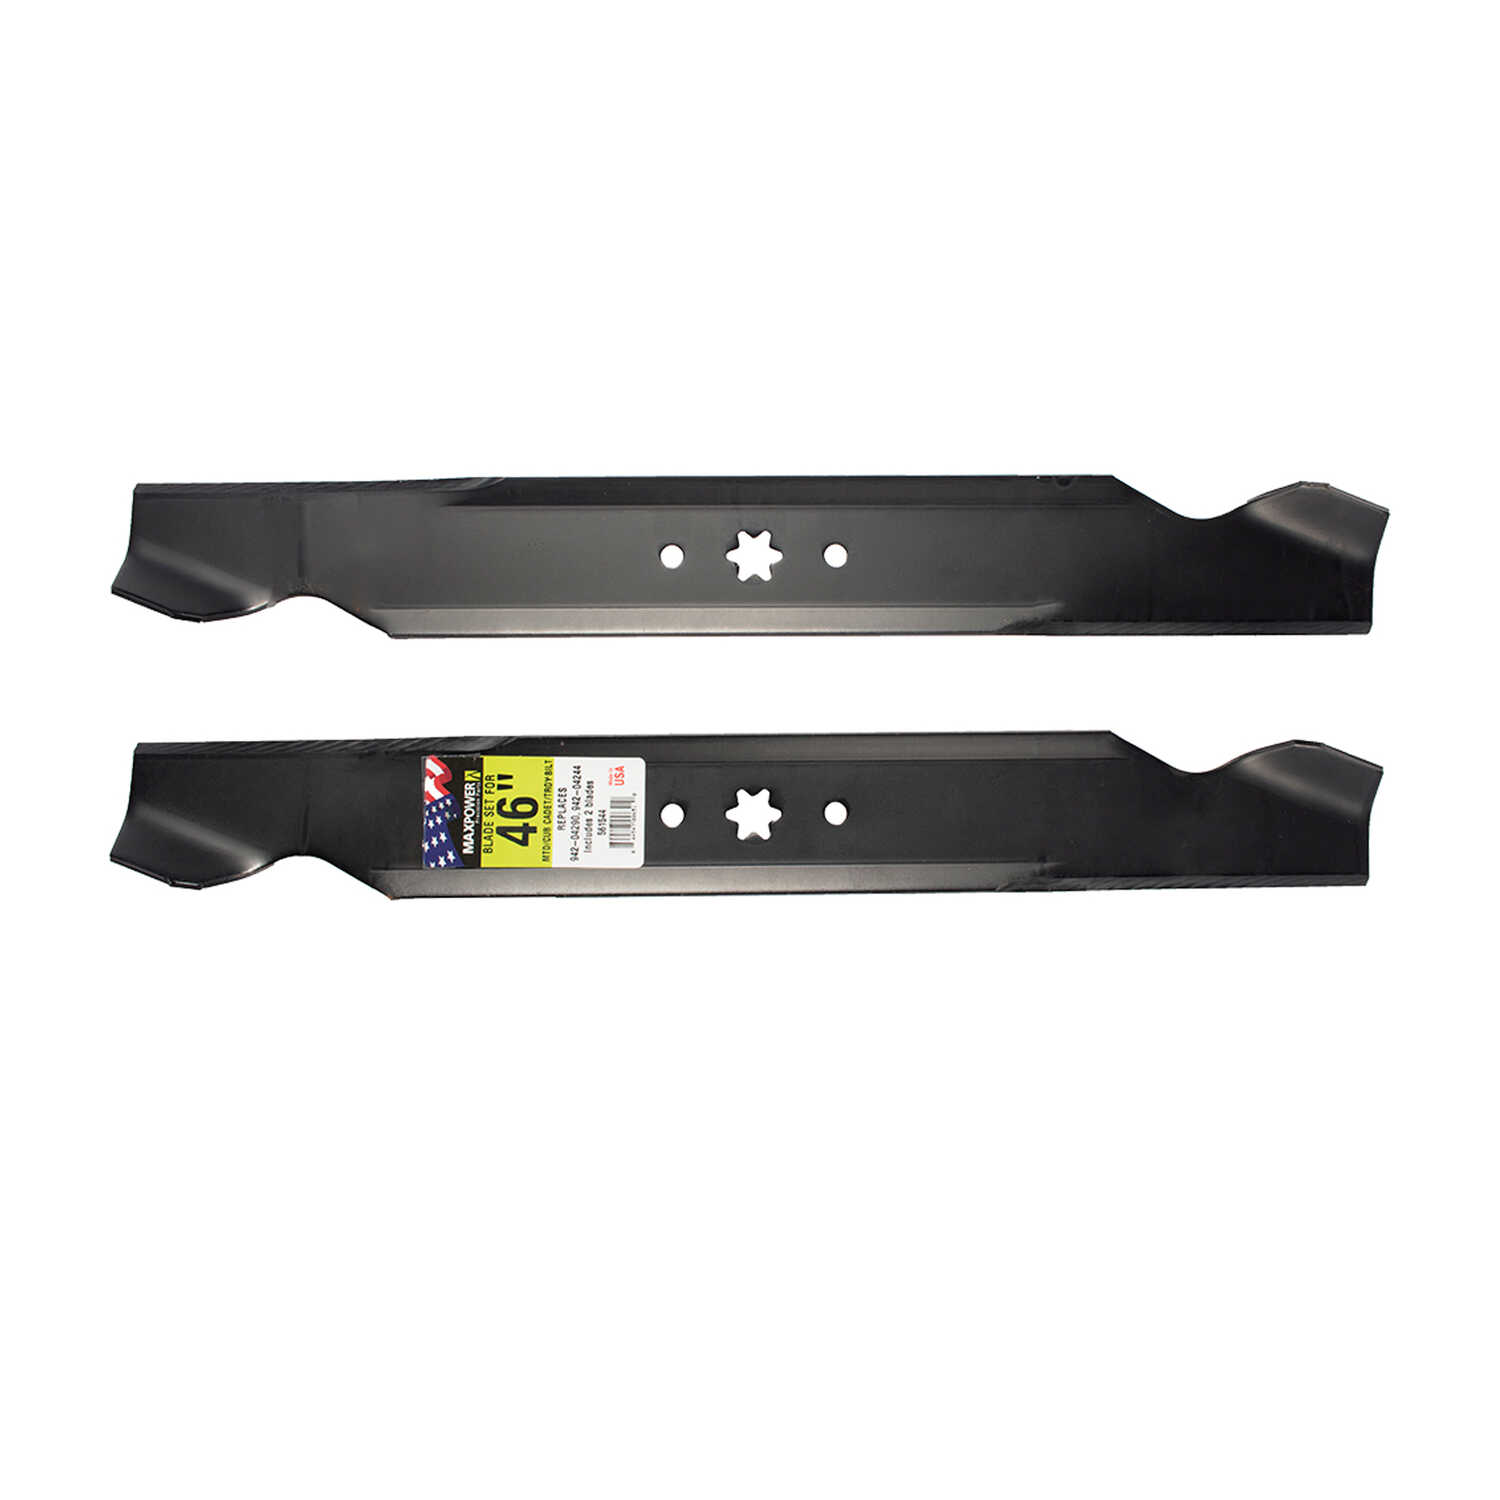 MaxPower  46 in. Standard  Mower Blade Set  For Riding Mowers 2 pk